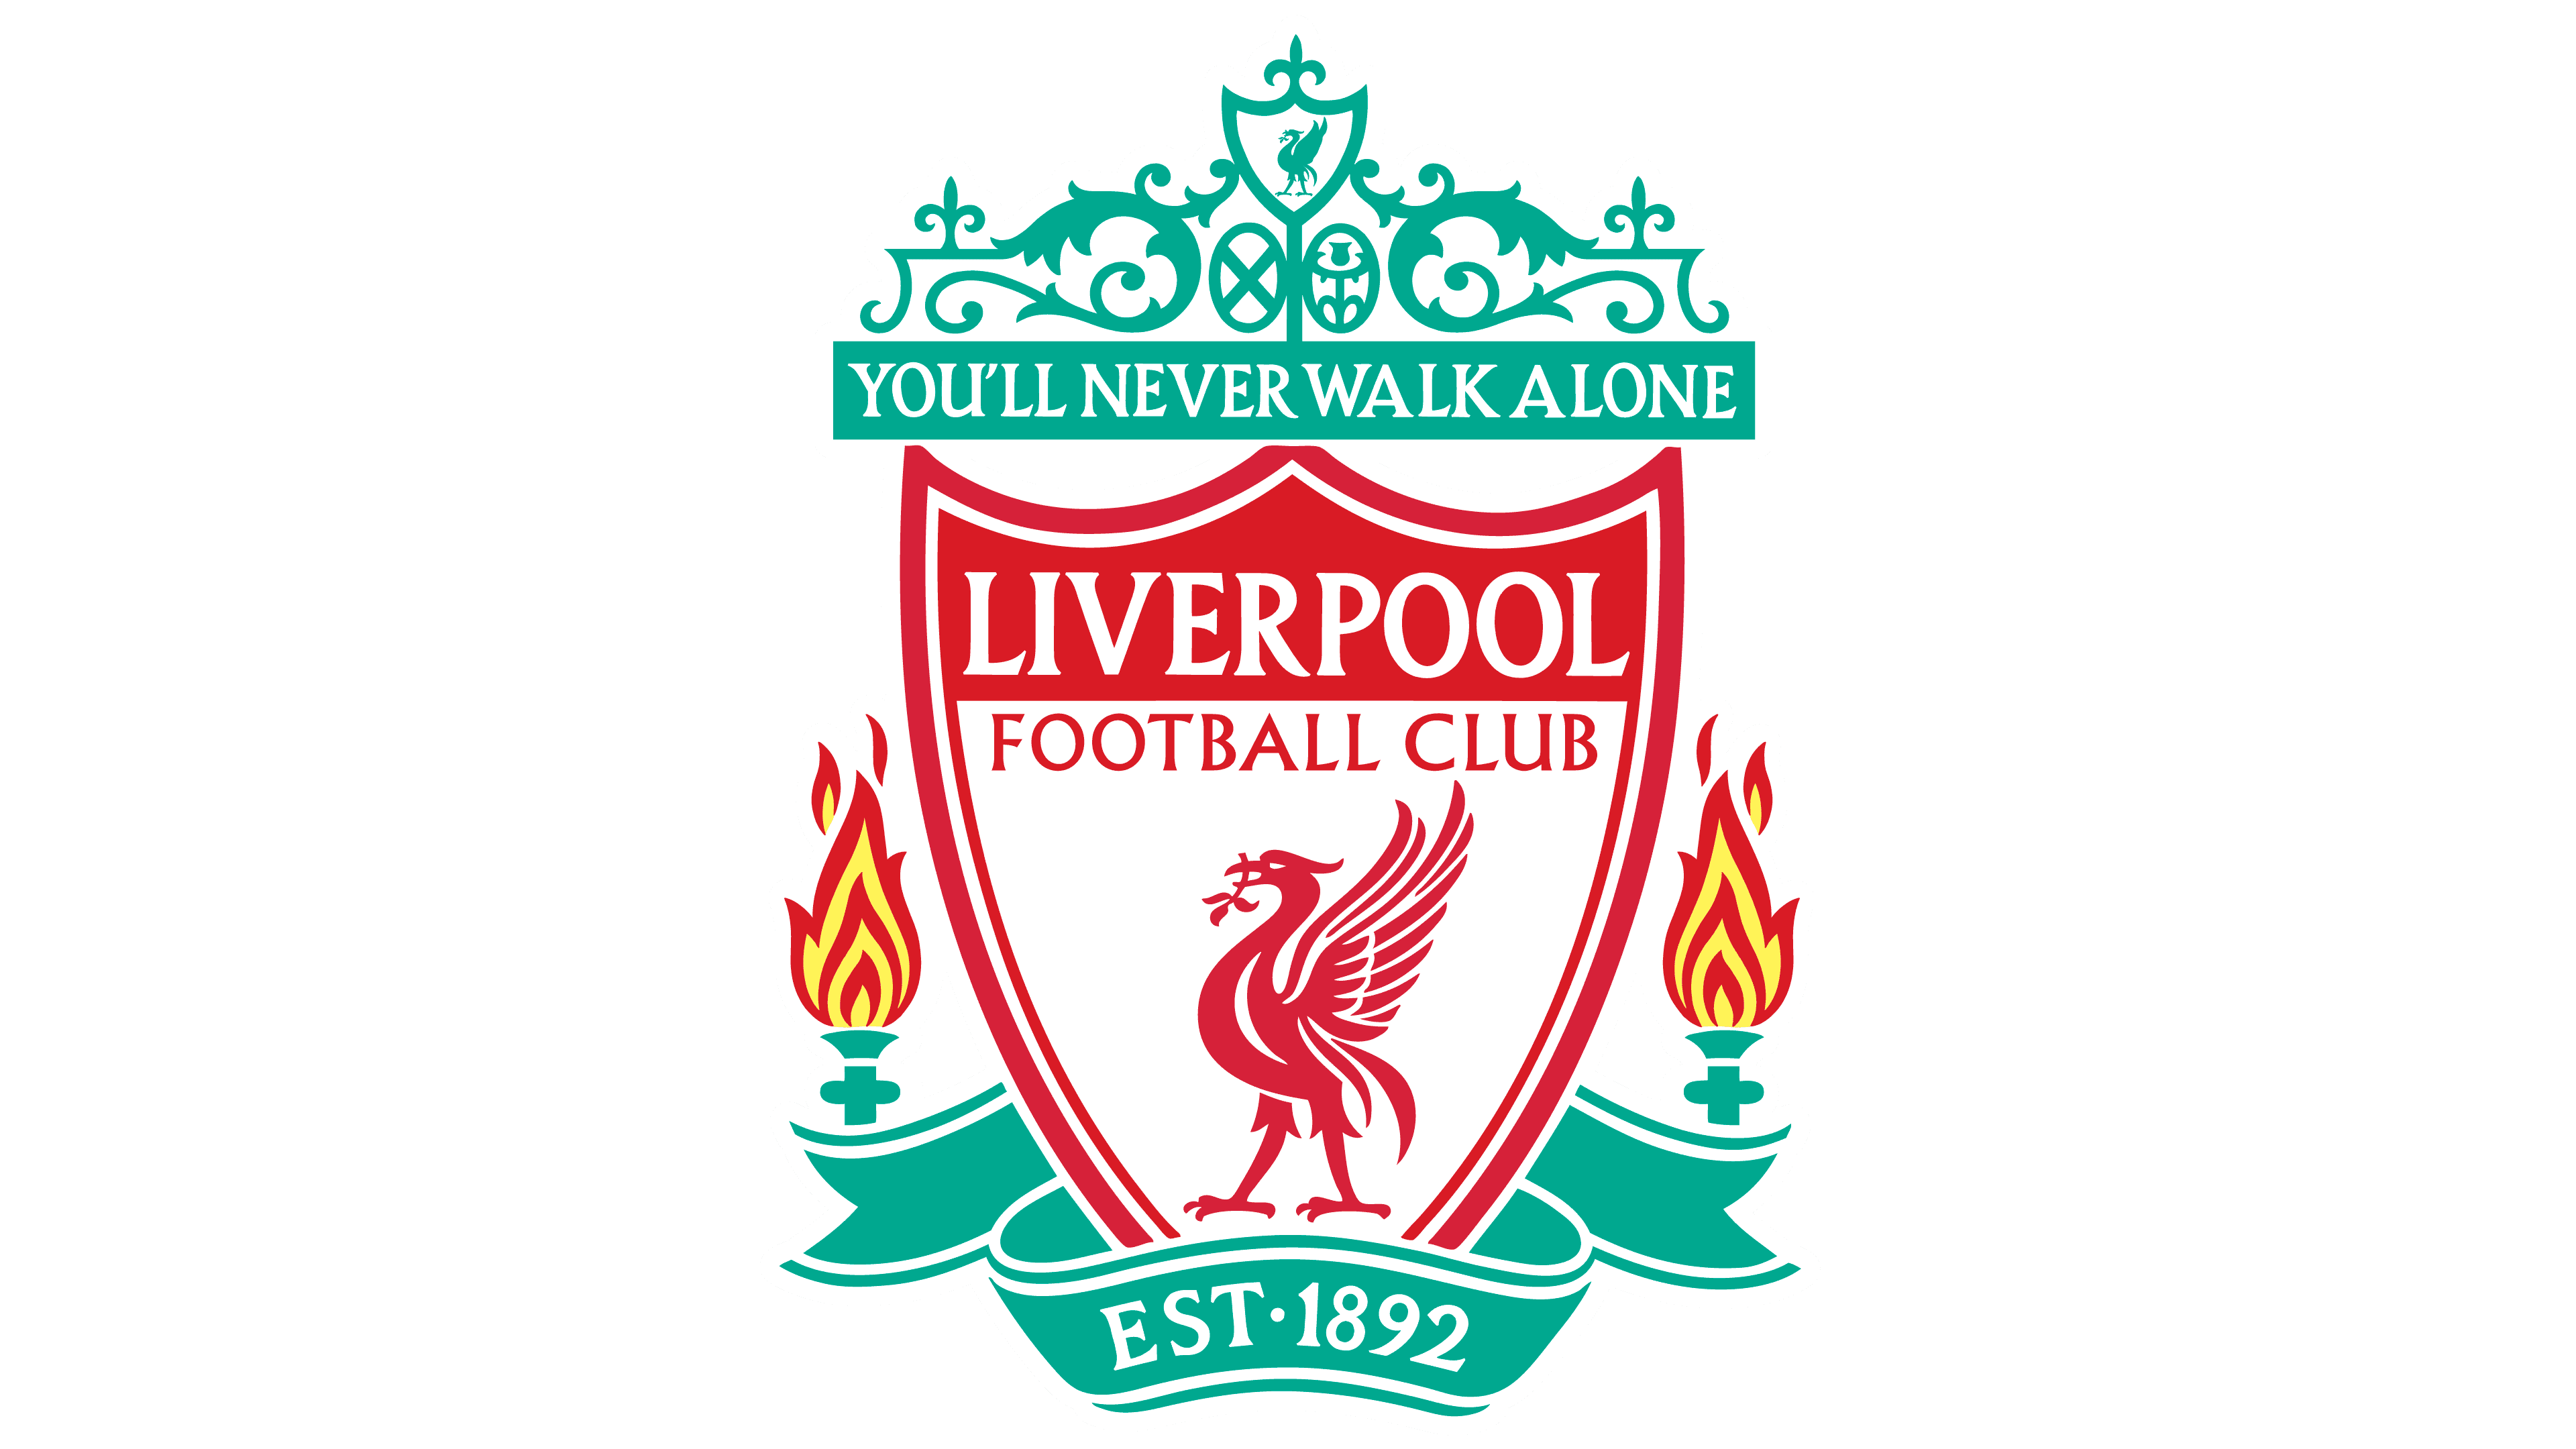 Liverpool Logo History The Most Famous Brands And Company Logos In The World